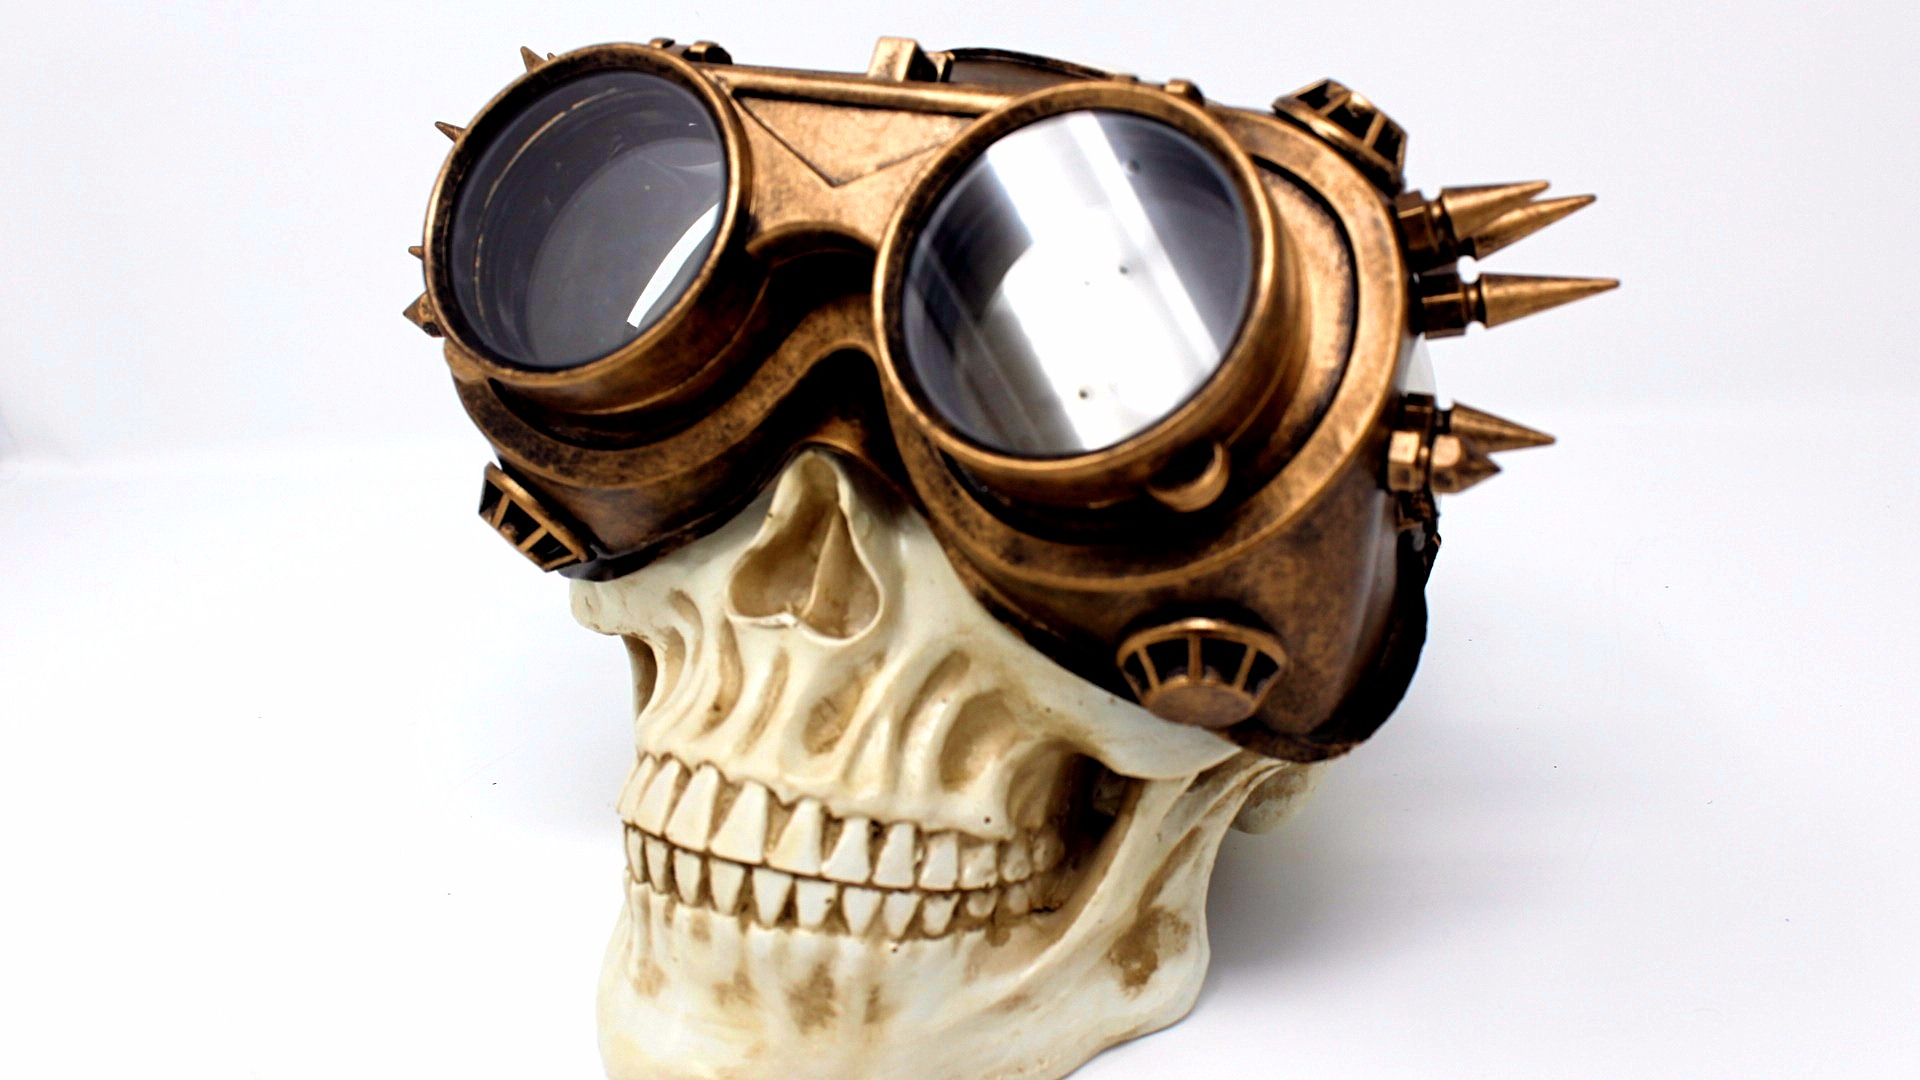 b8a623f084 Paradise Treasures - Steampunk Flip Aviator Goggles Apocalypse Goggle  Sunglasses Cosplay Cyber Gothic - Walmart.com